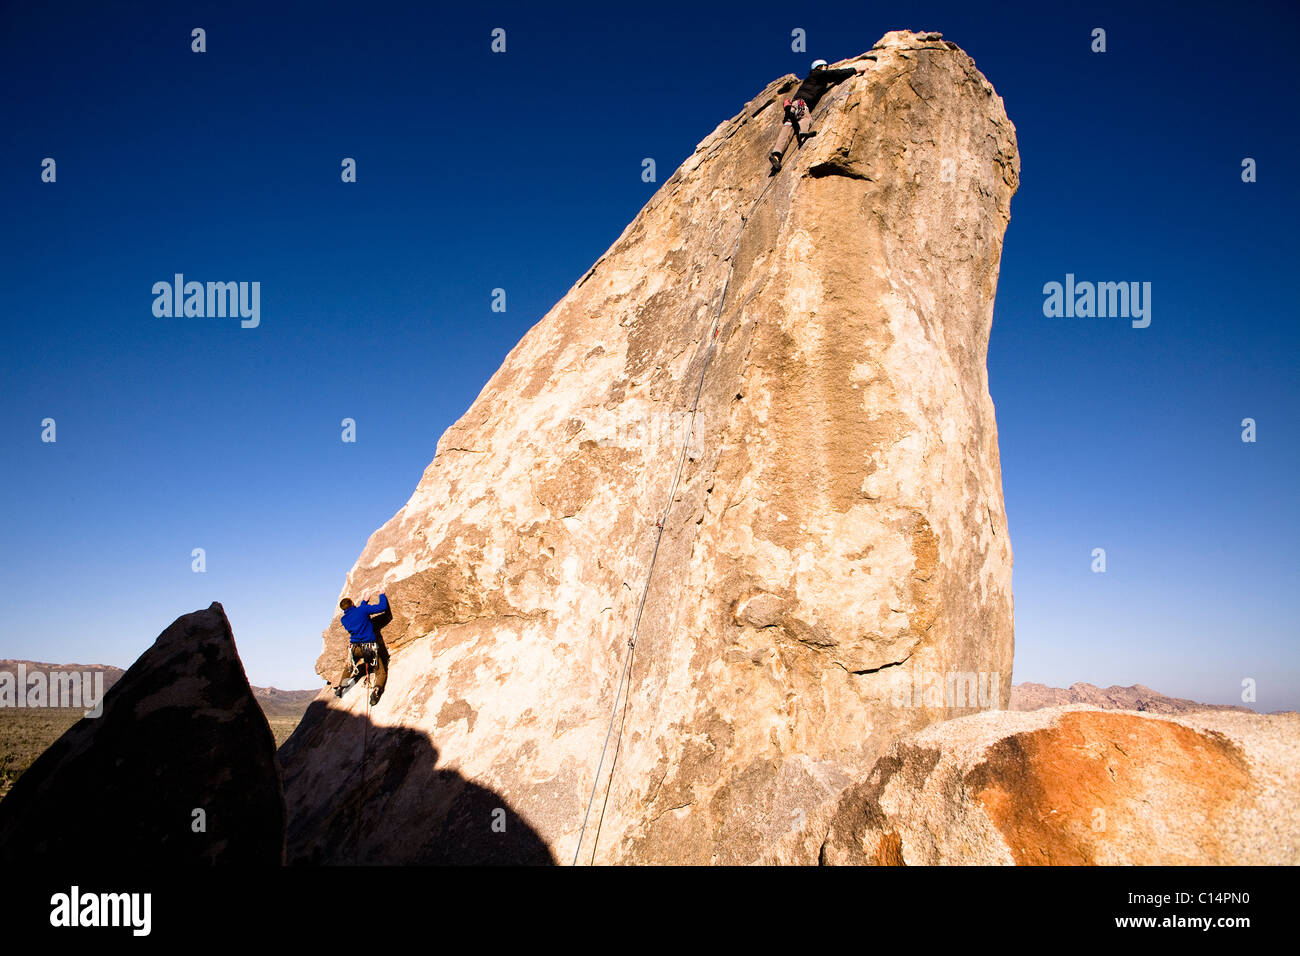 Two male climbers work their way up Headstone Rock in Joshua Tree National Park, California. - Stock Image